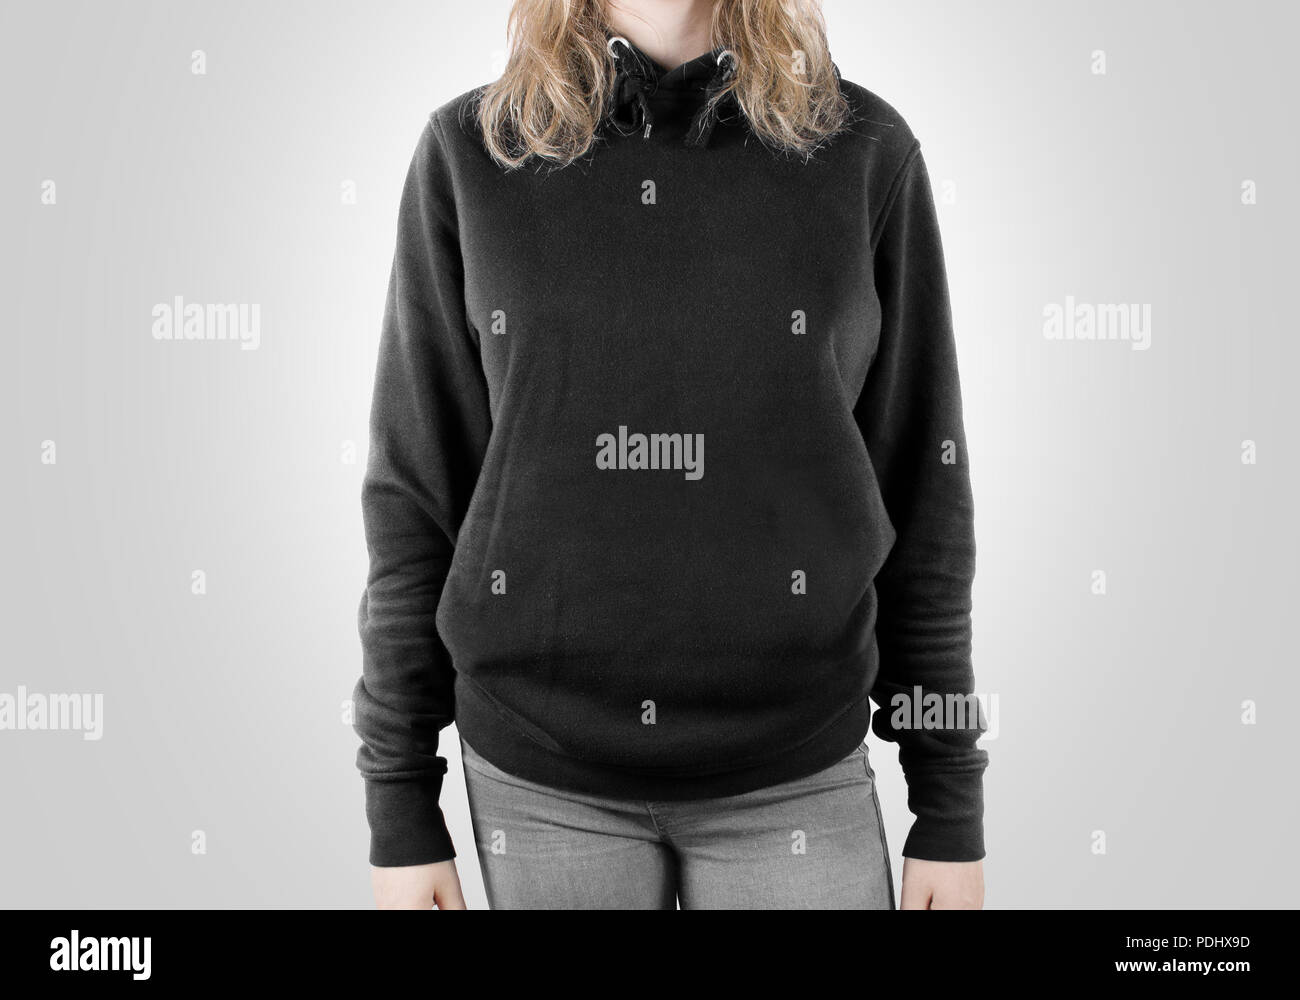 Blank black sweatshirt mock up isolated. Female wear dark hoodie mockup. Plain hoody design presentation. Clear gray loose overall model. Pullover for print. Man clothes grey sweat shirt template. - Stock Image